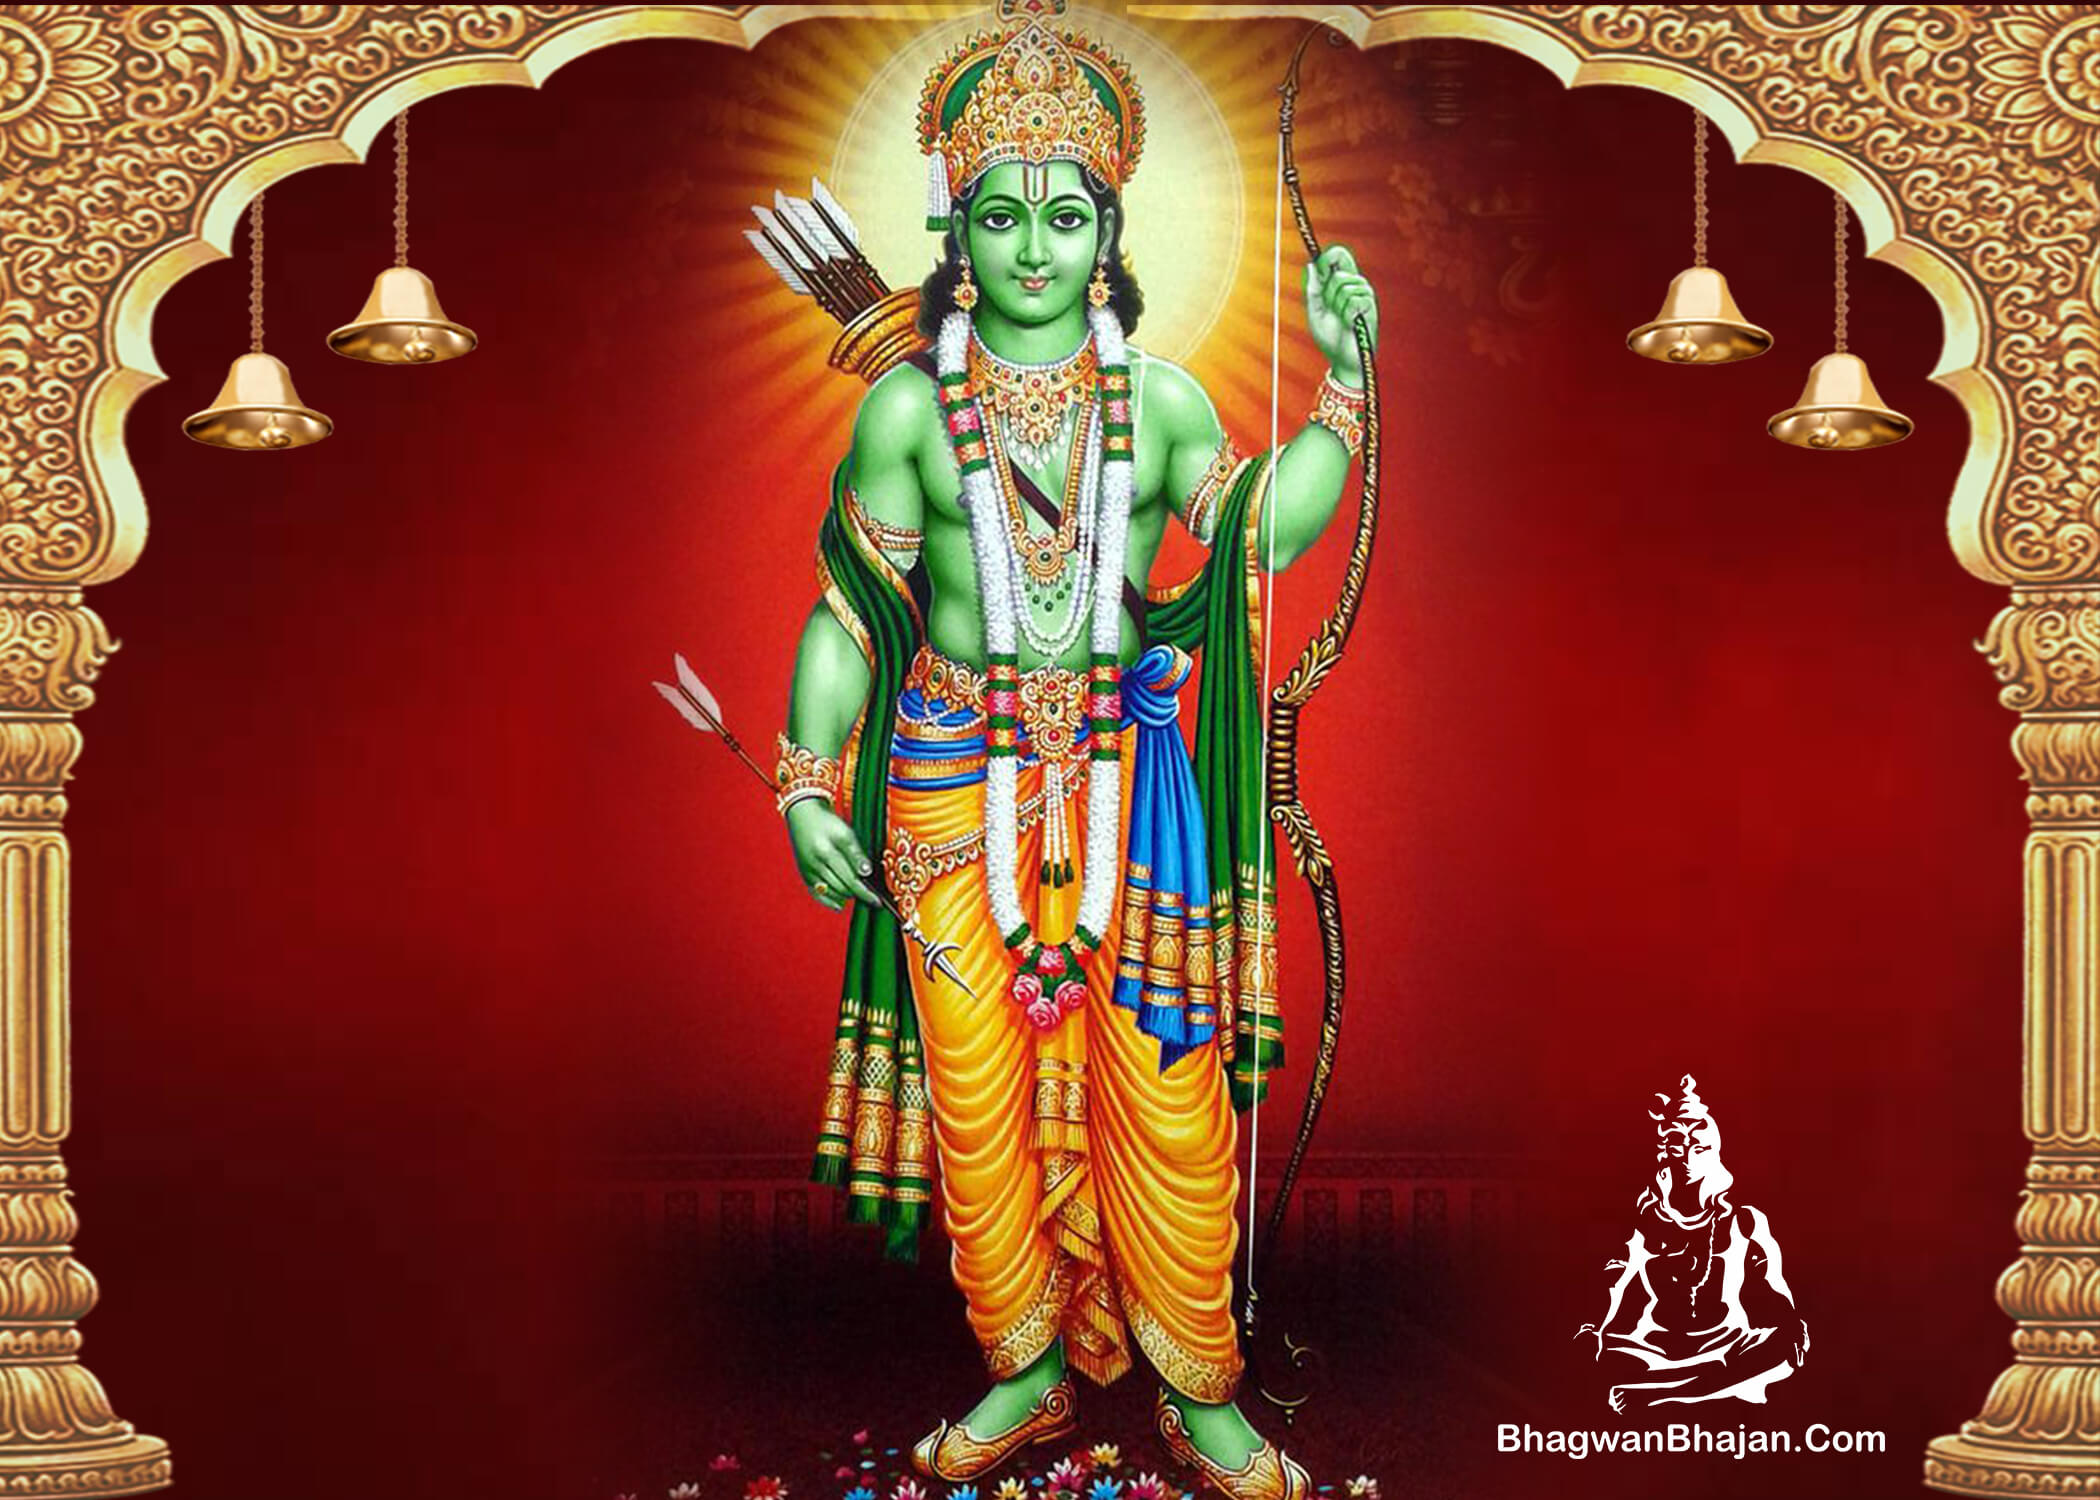 jai shri ram best new wallpaper